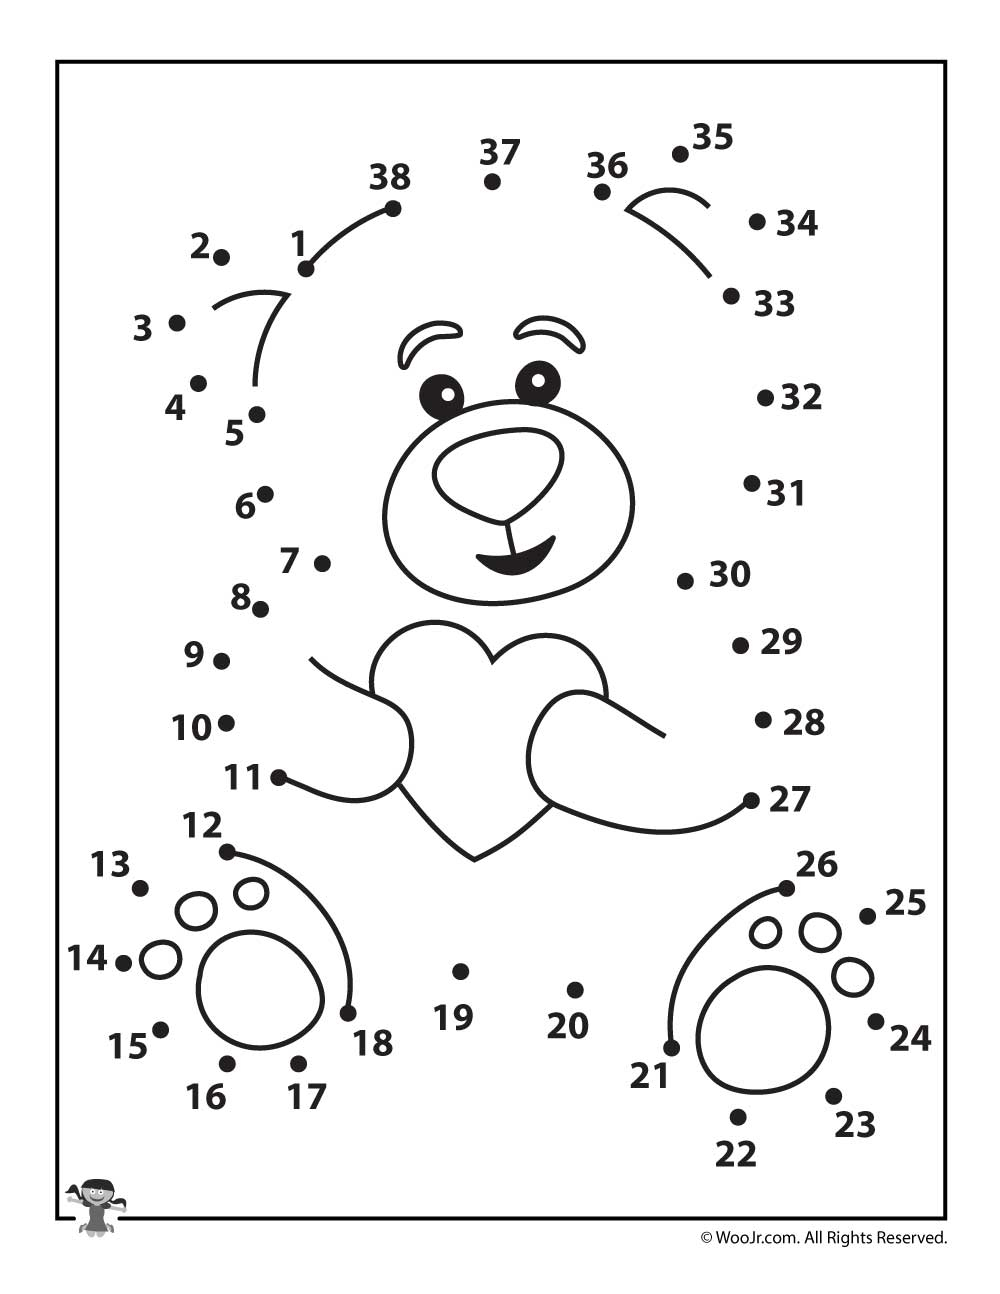 Free Printable Dot To Dot Puzzles For Kids